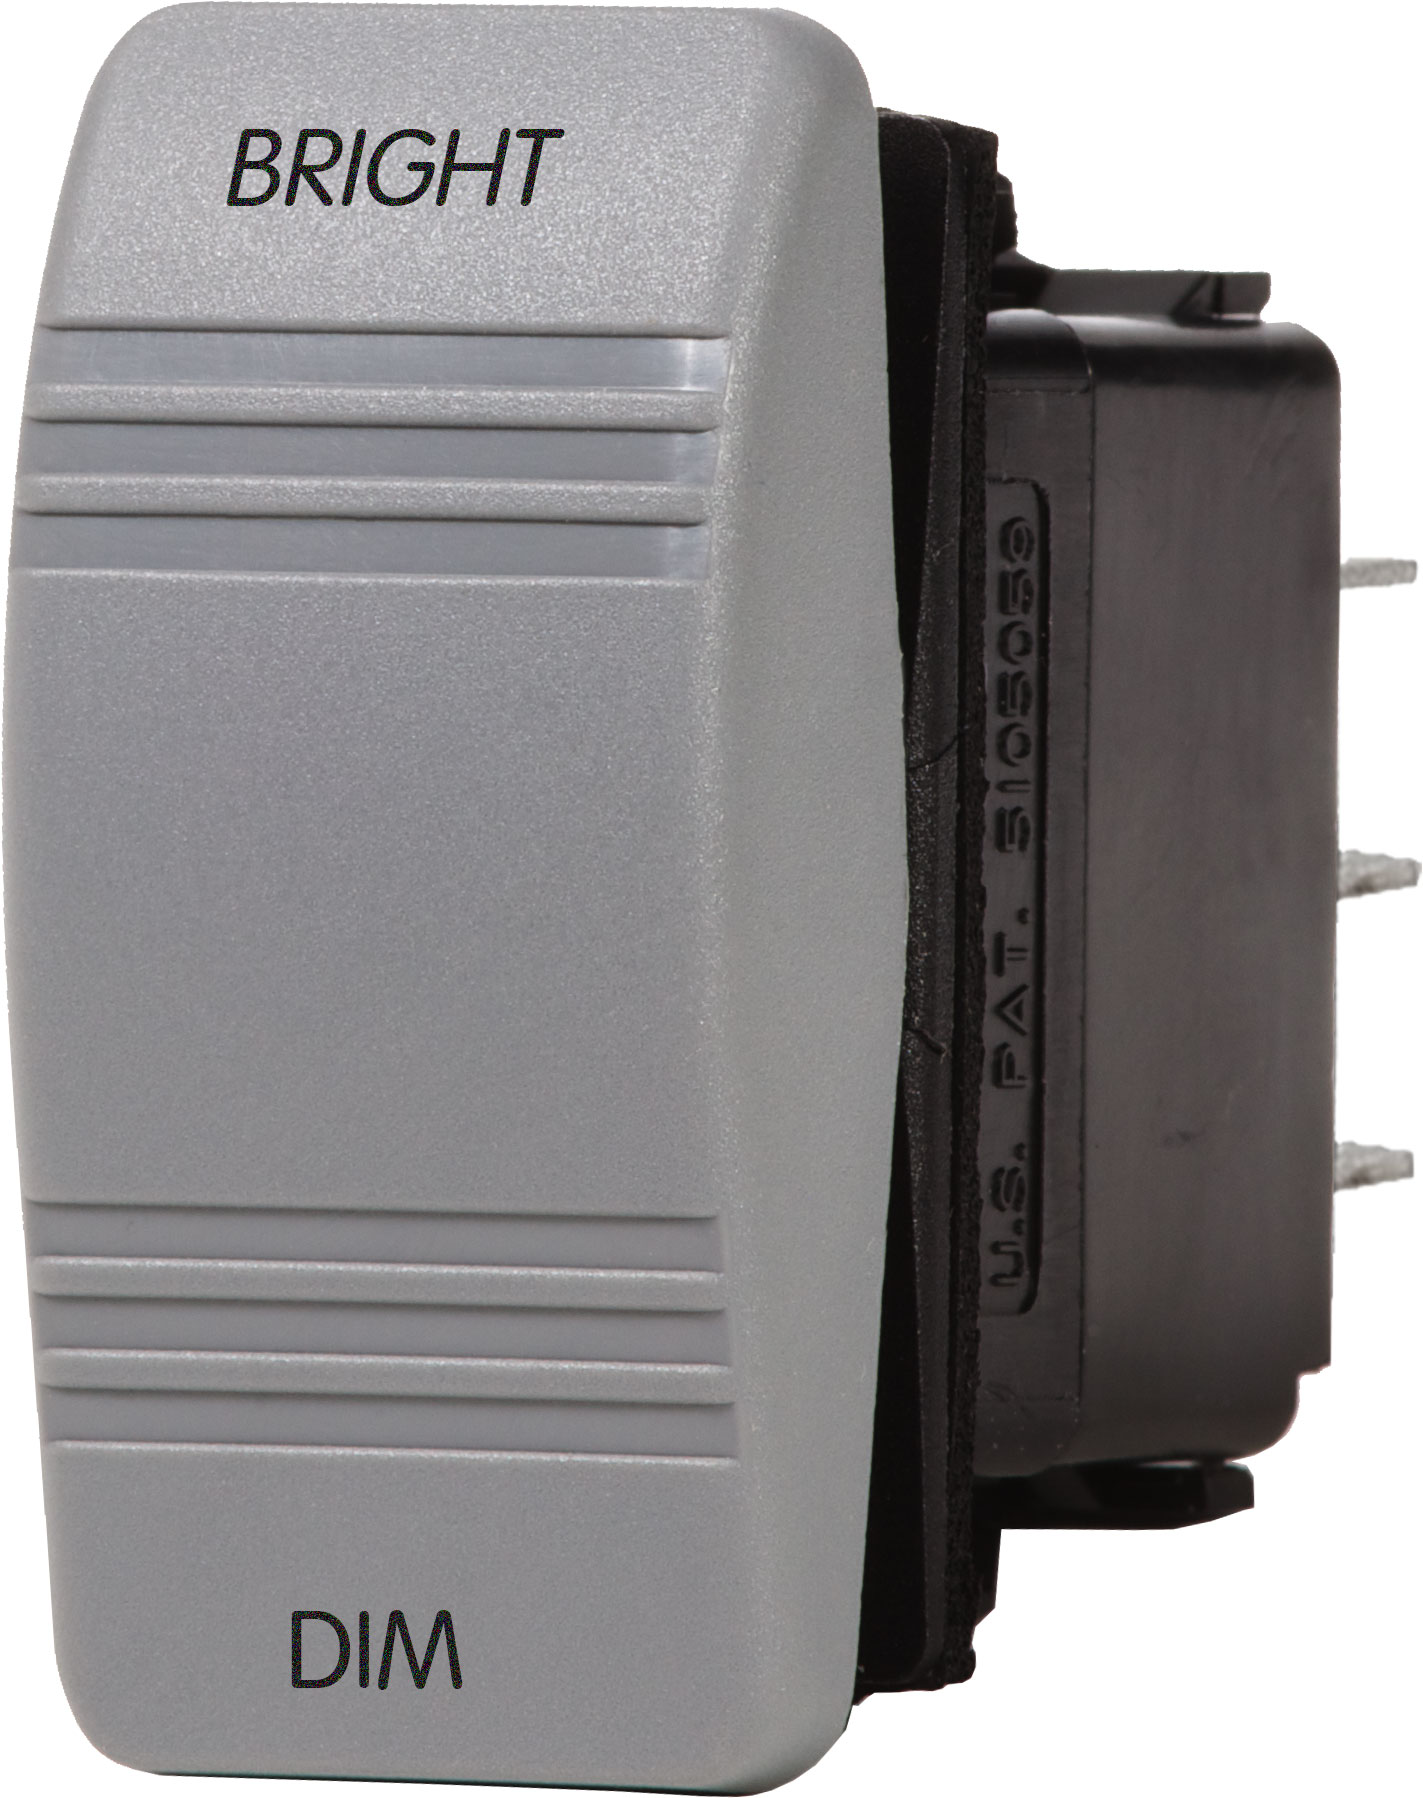 contura switch wiring diagram acura integra dimmer control switch-gray - blue sea systems